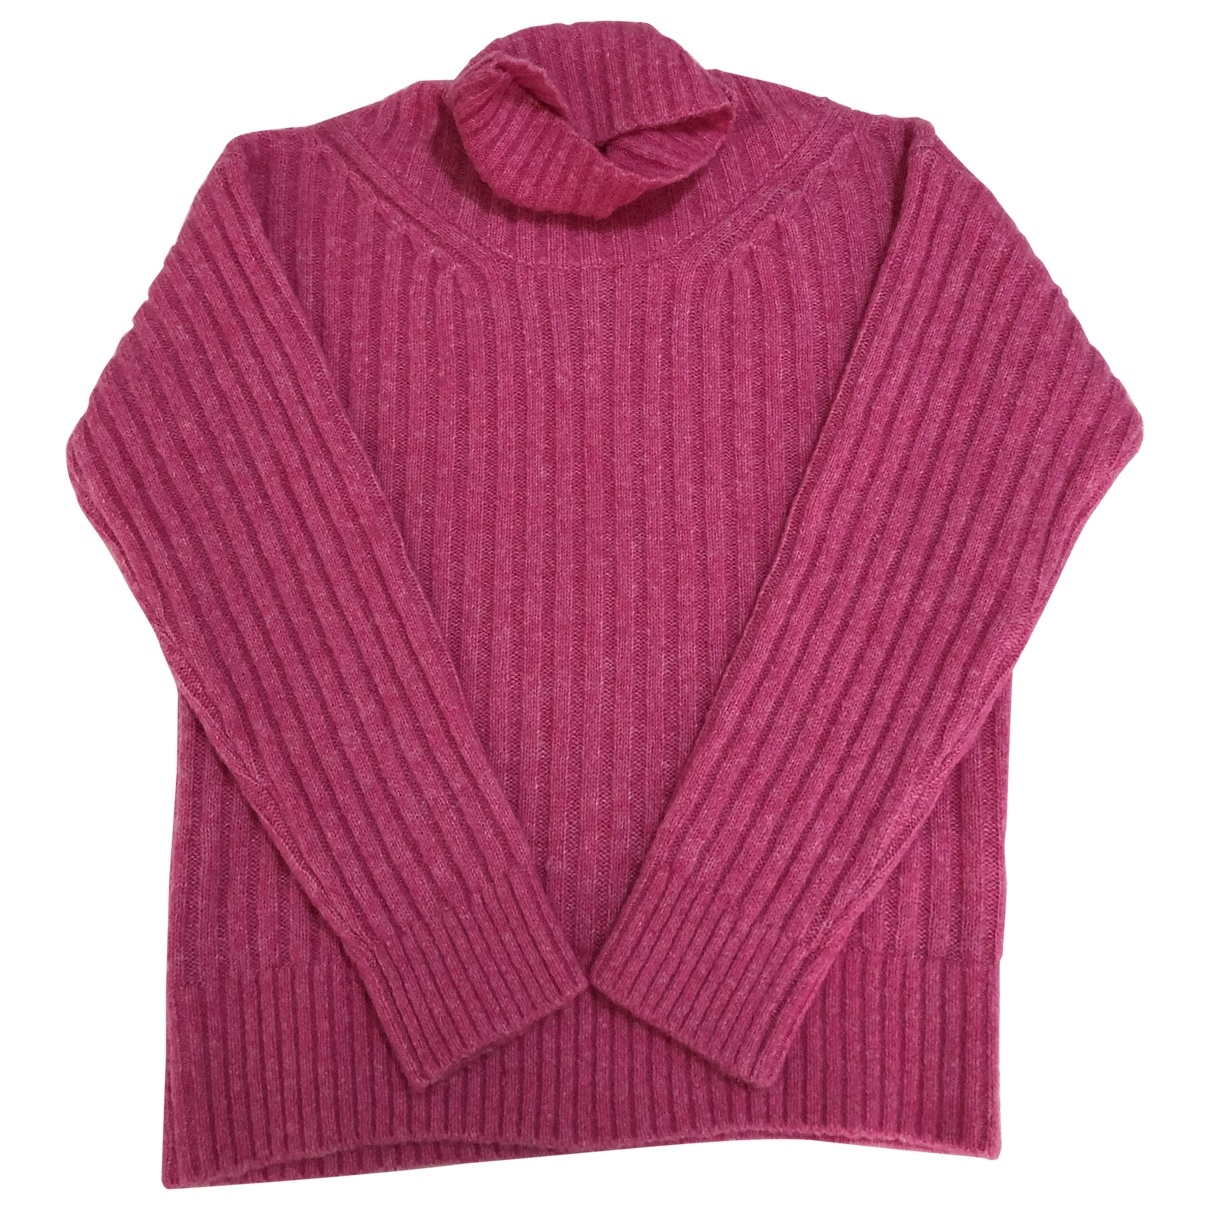 3.1 Phillip Lim \N Pink Wool Knitwear for Women XS International